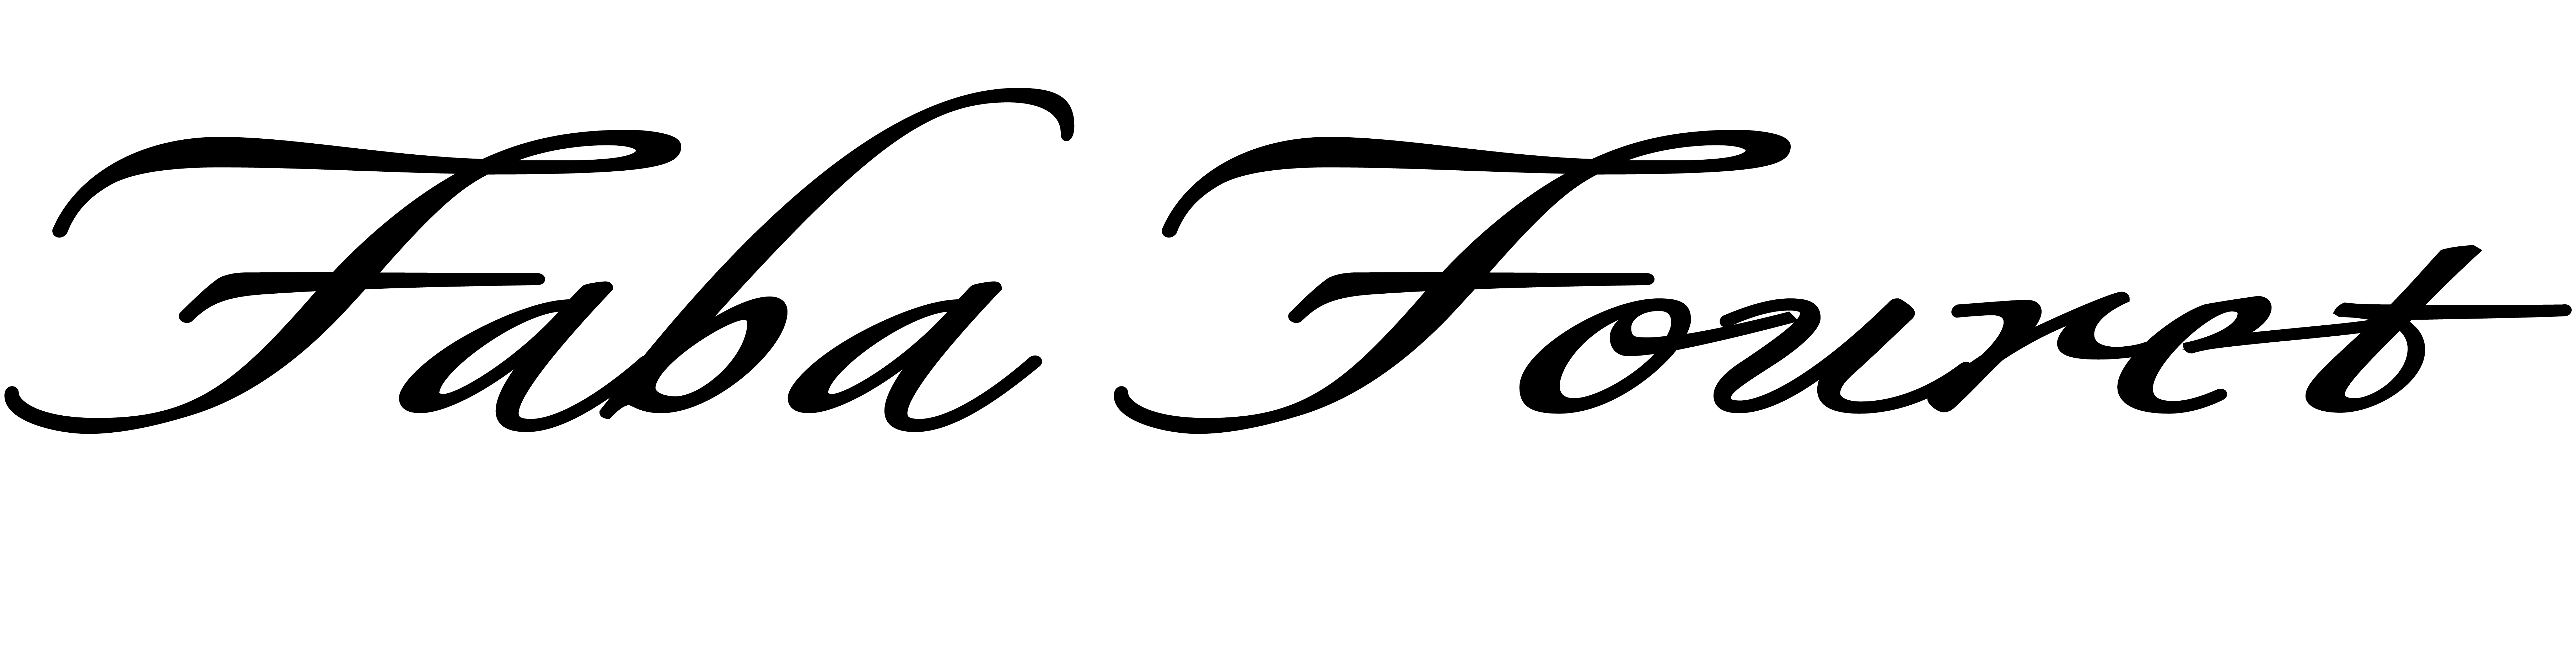 faba fouret Signature